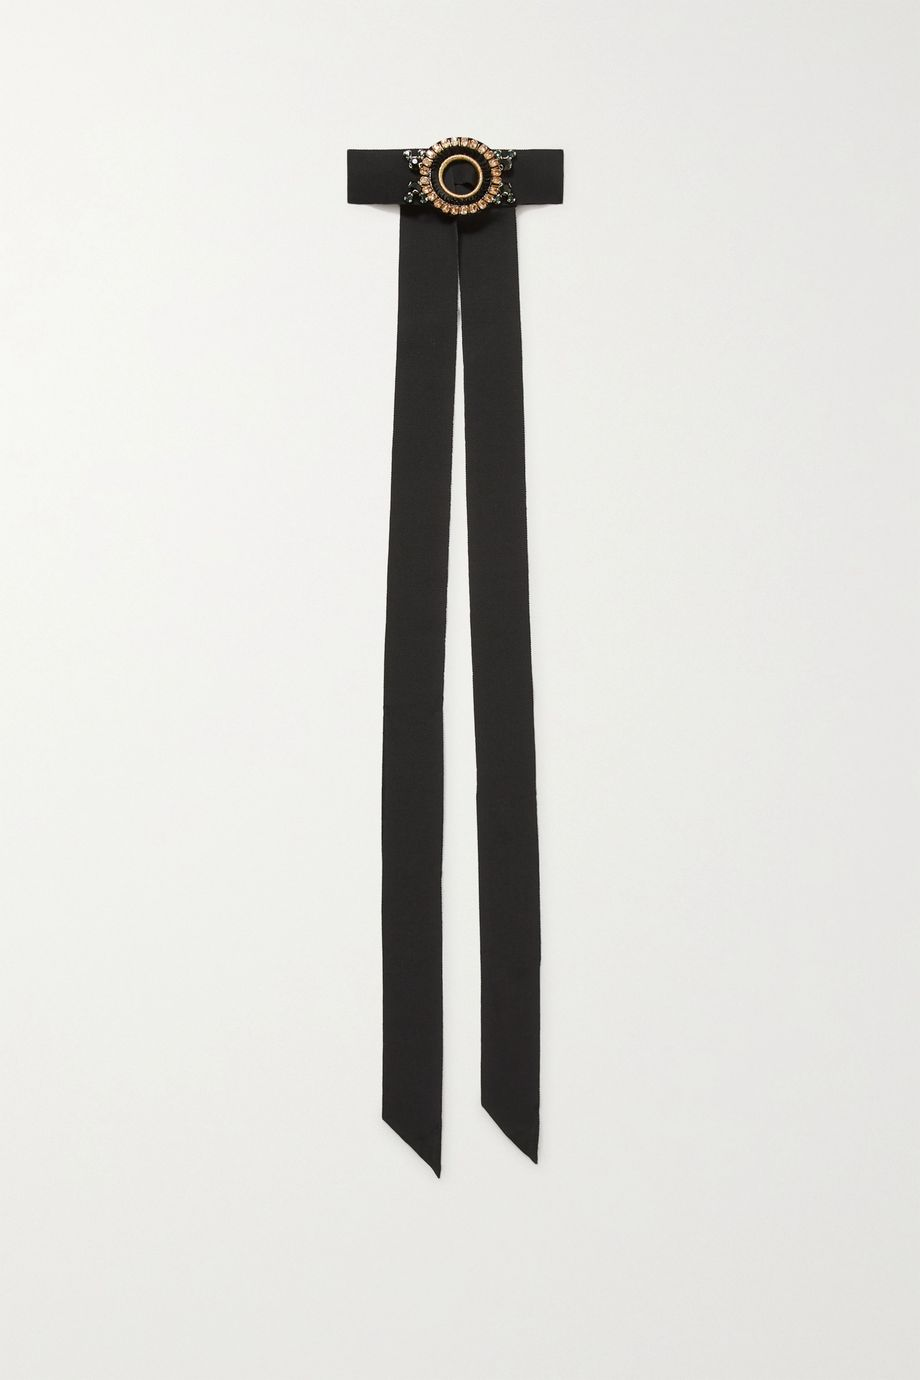 Dries Van Noten Embellished grosgrain choker